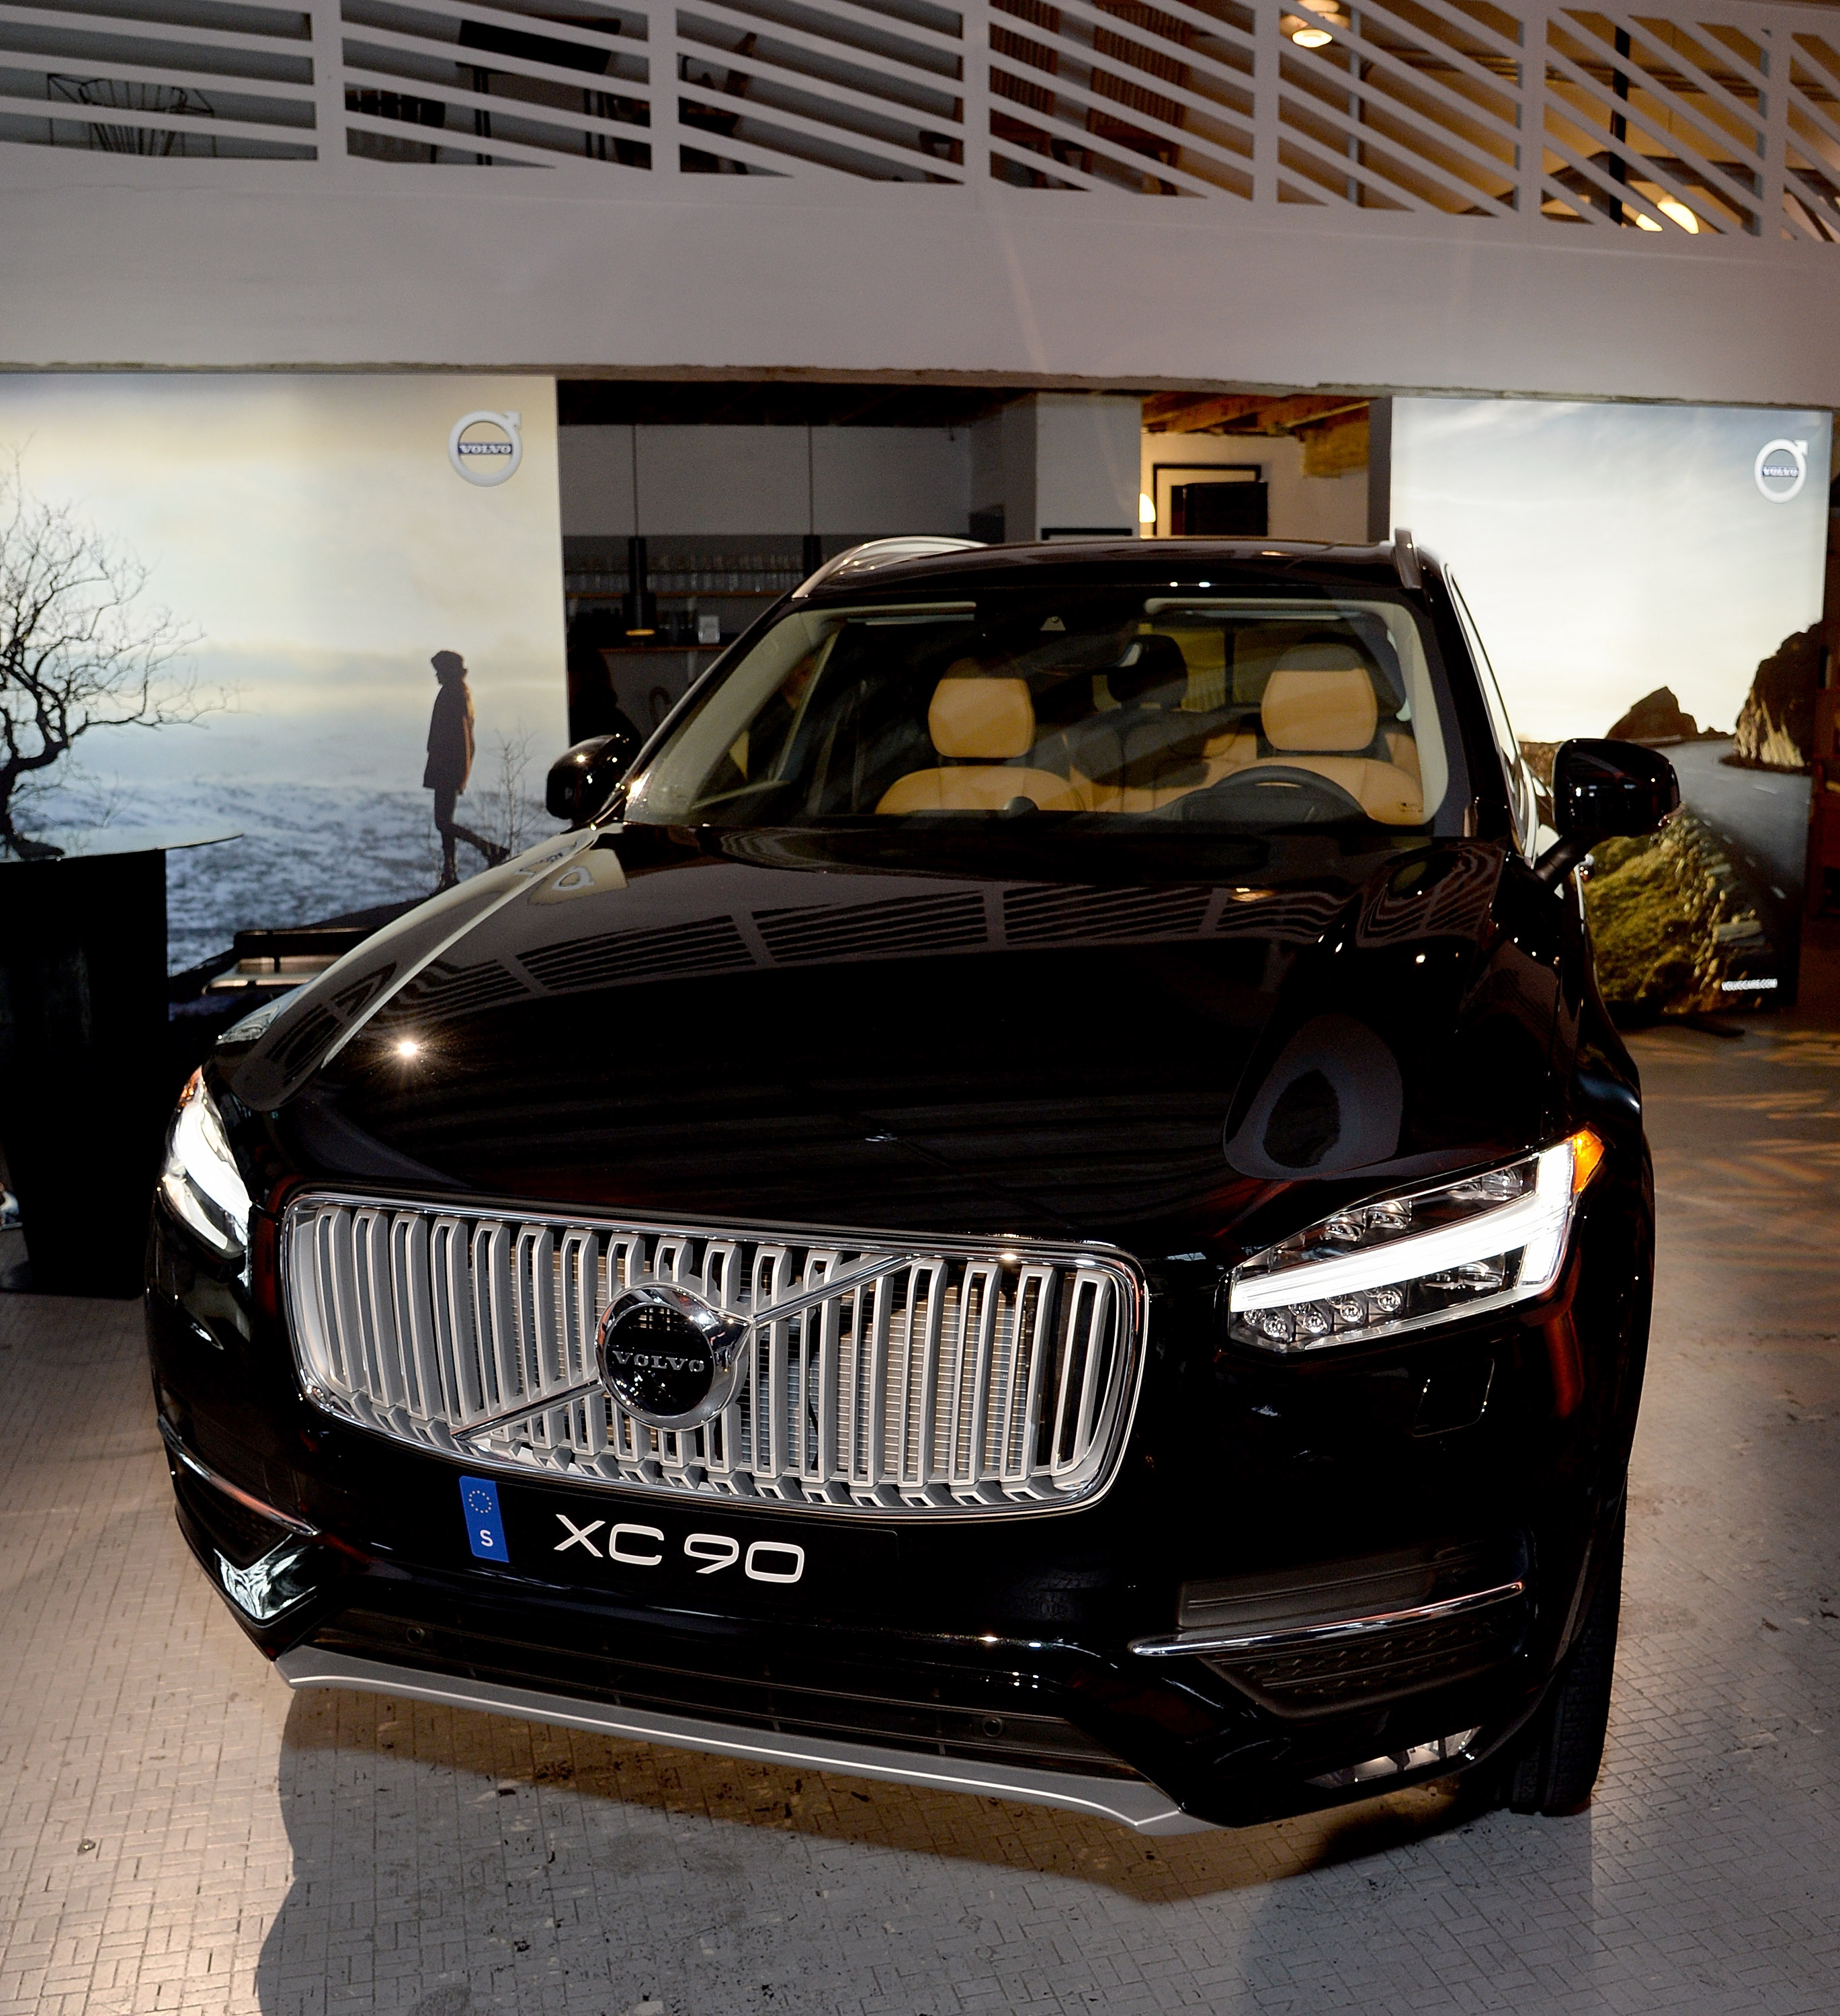 Uber and Volvo commit $300 million to developing autonomous